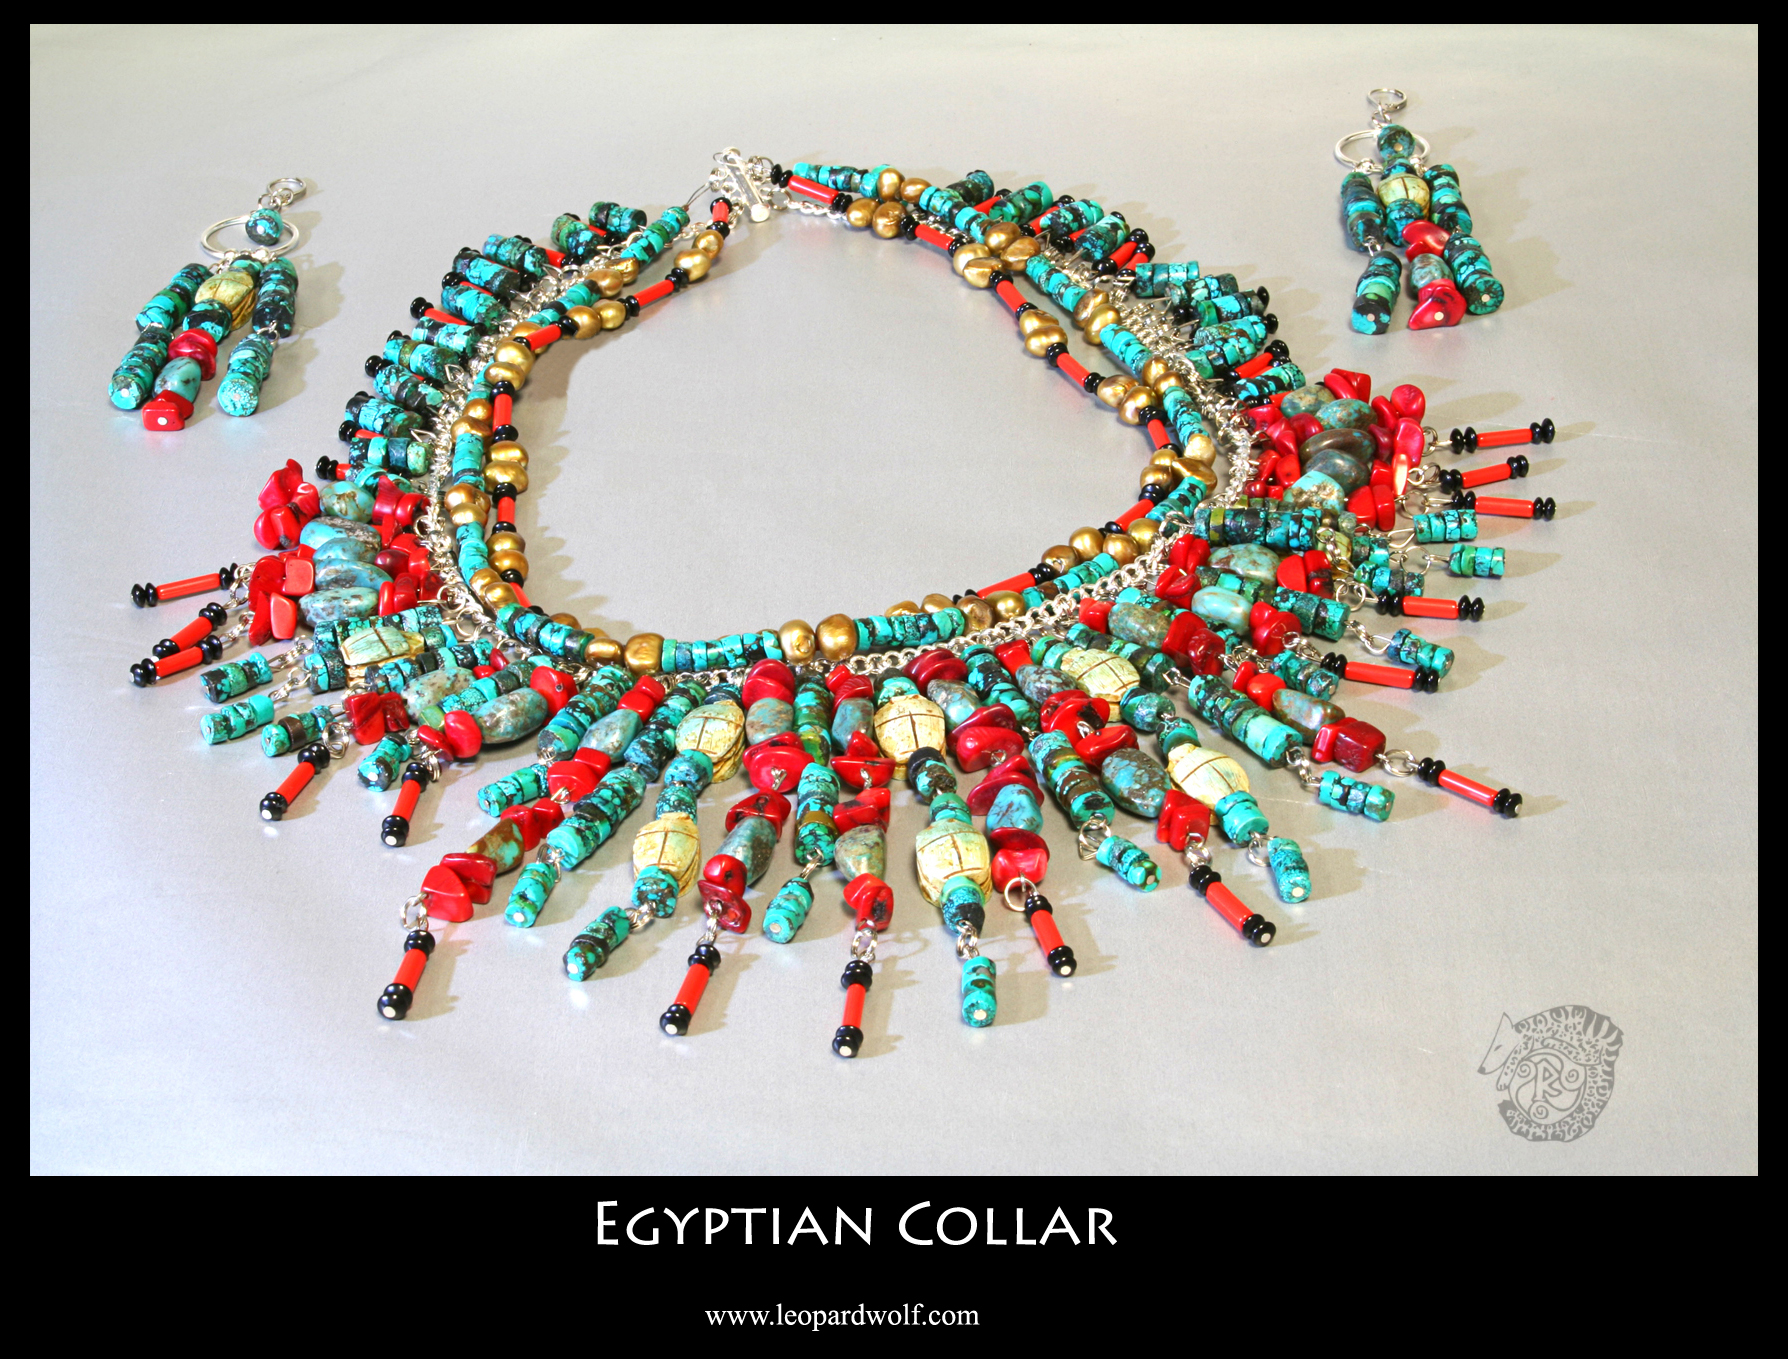 Egyptian Collar by leopardwolf